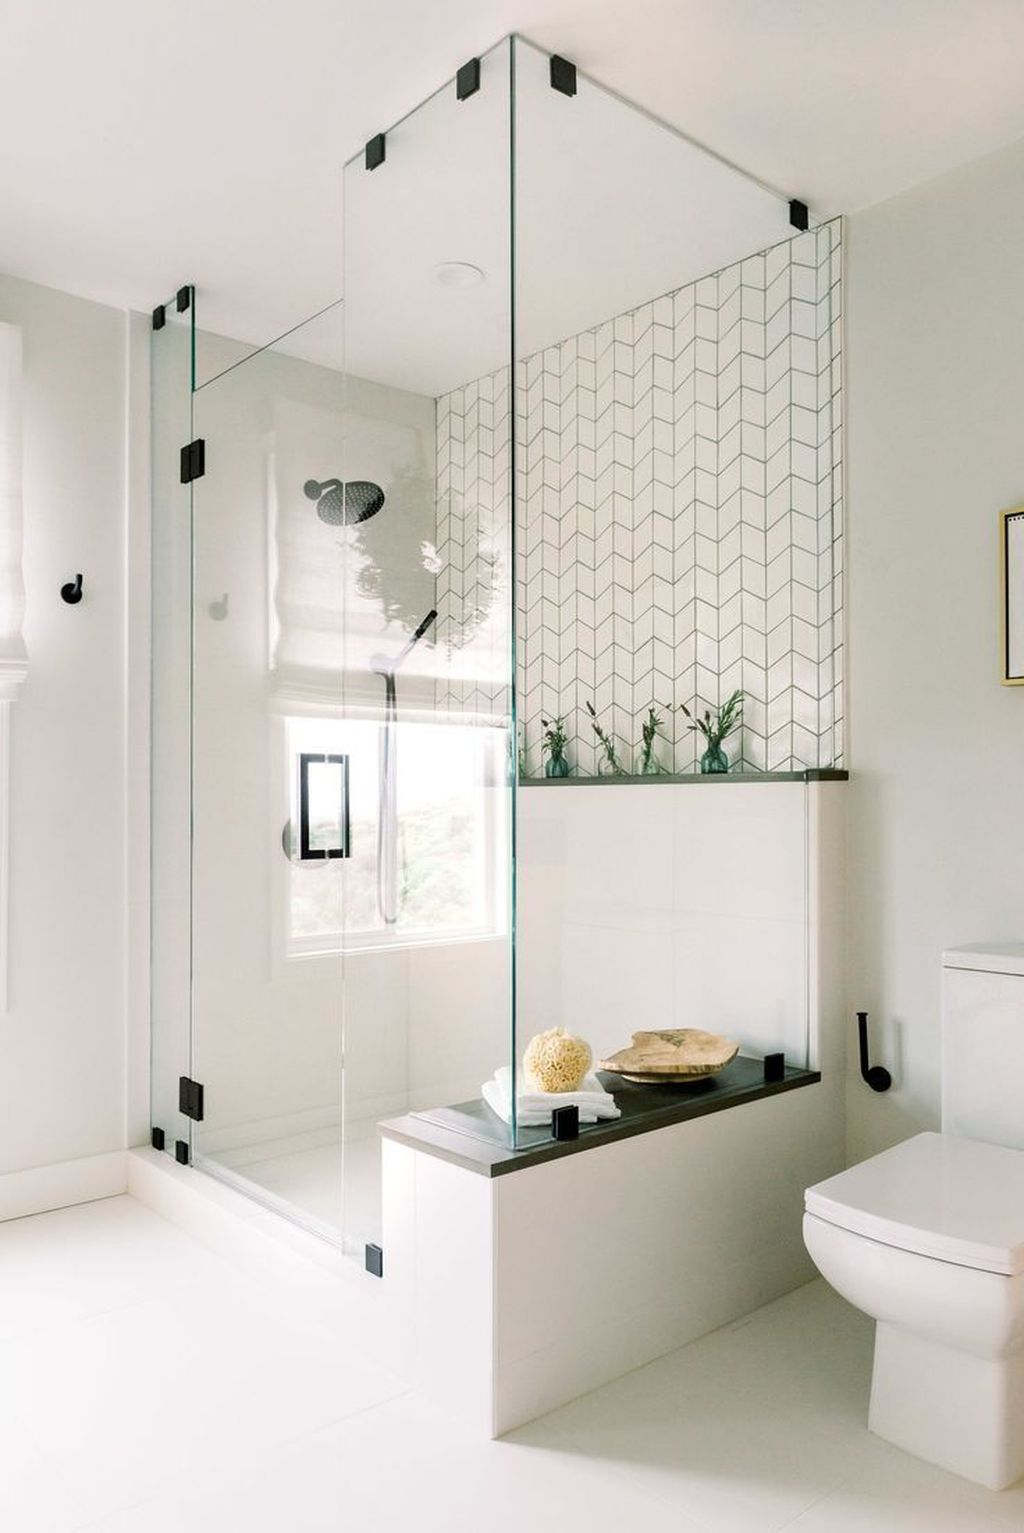 Amazing White Tile Bathroom Design Ideas Looks Elegant 30